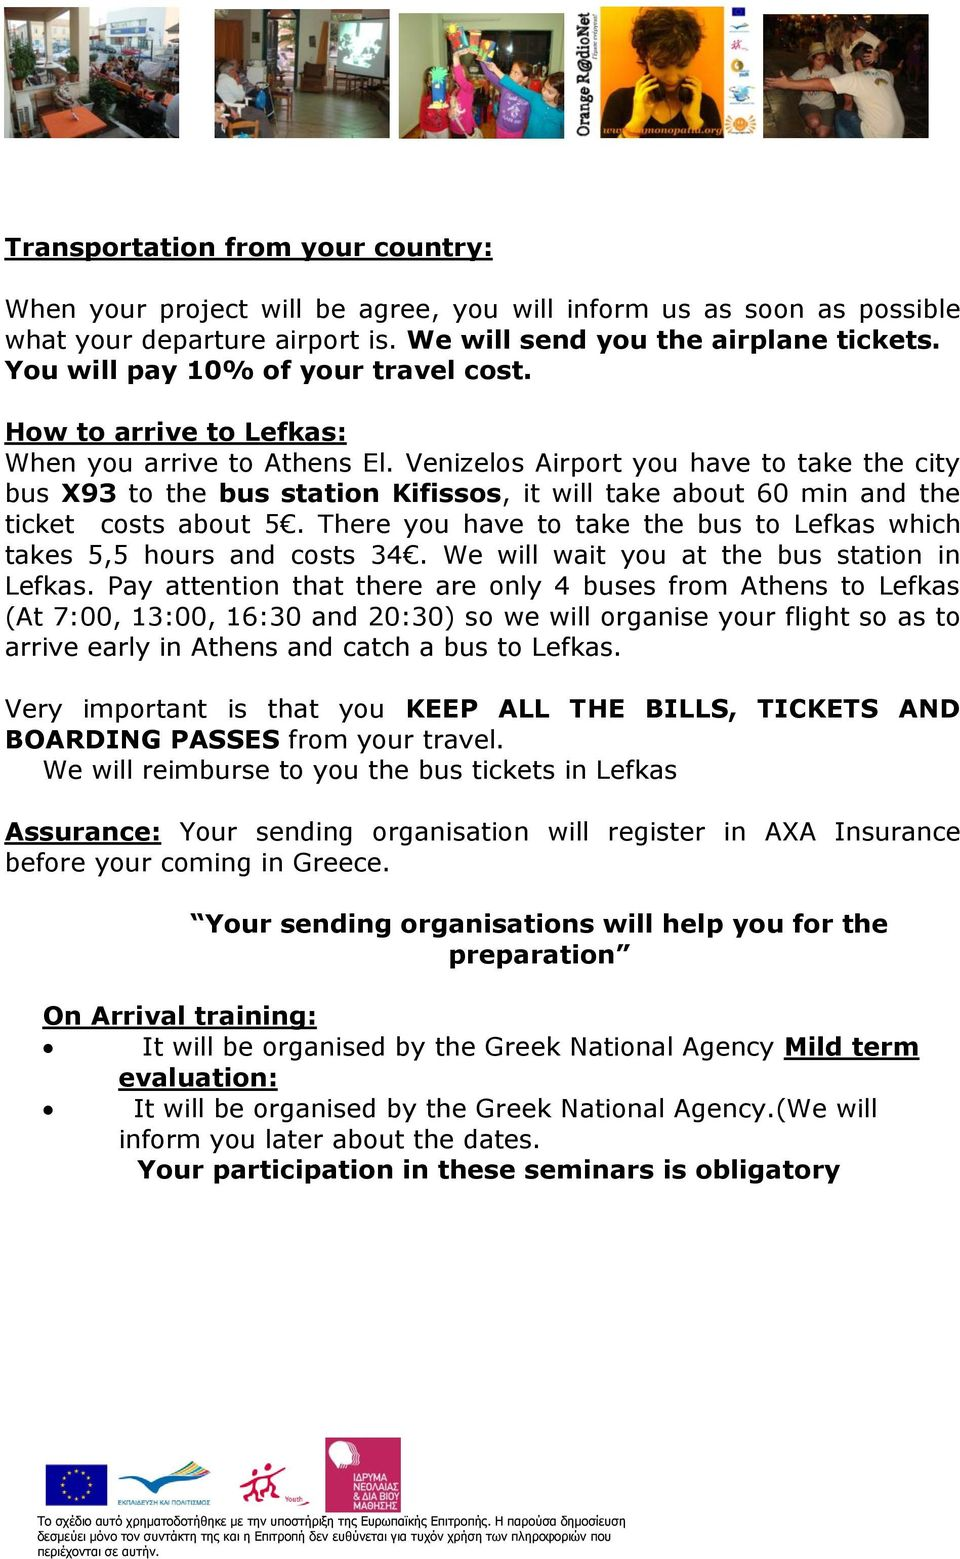 Venizelos Airport you have to take the city bus X93 to the bus station Kifissos, it will take about 60 min and the ticket costs about 5.